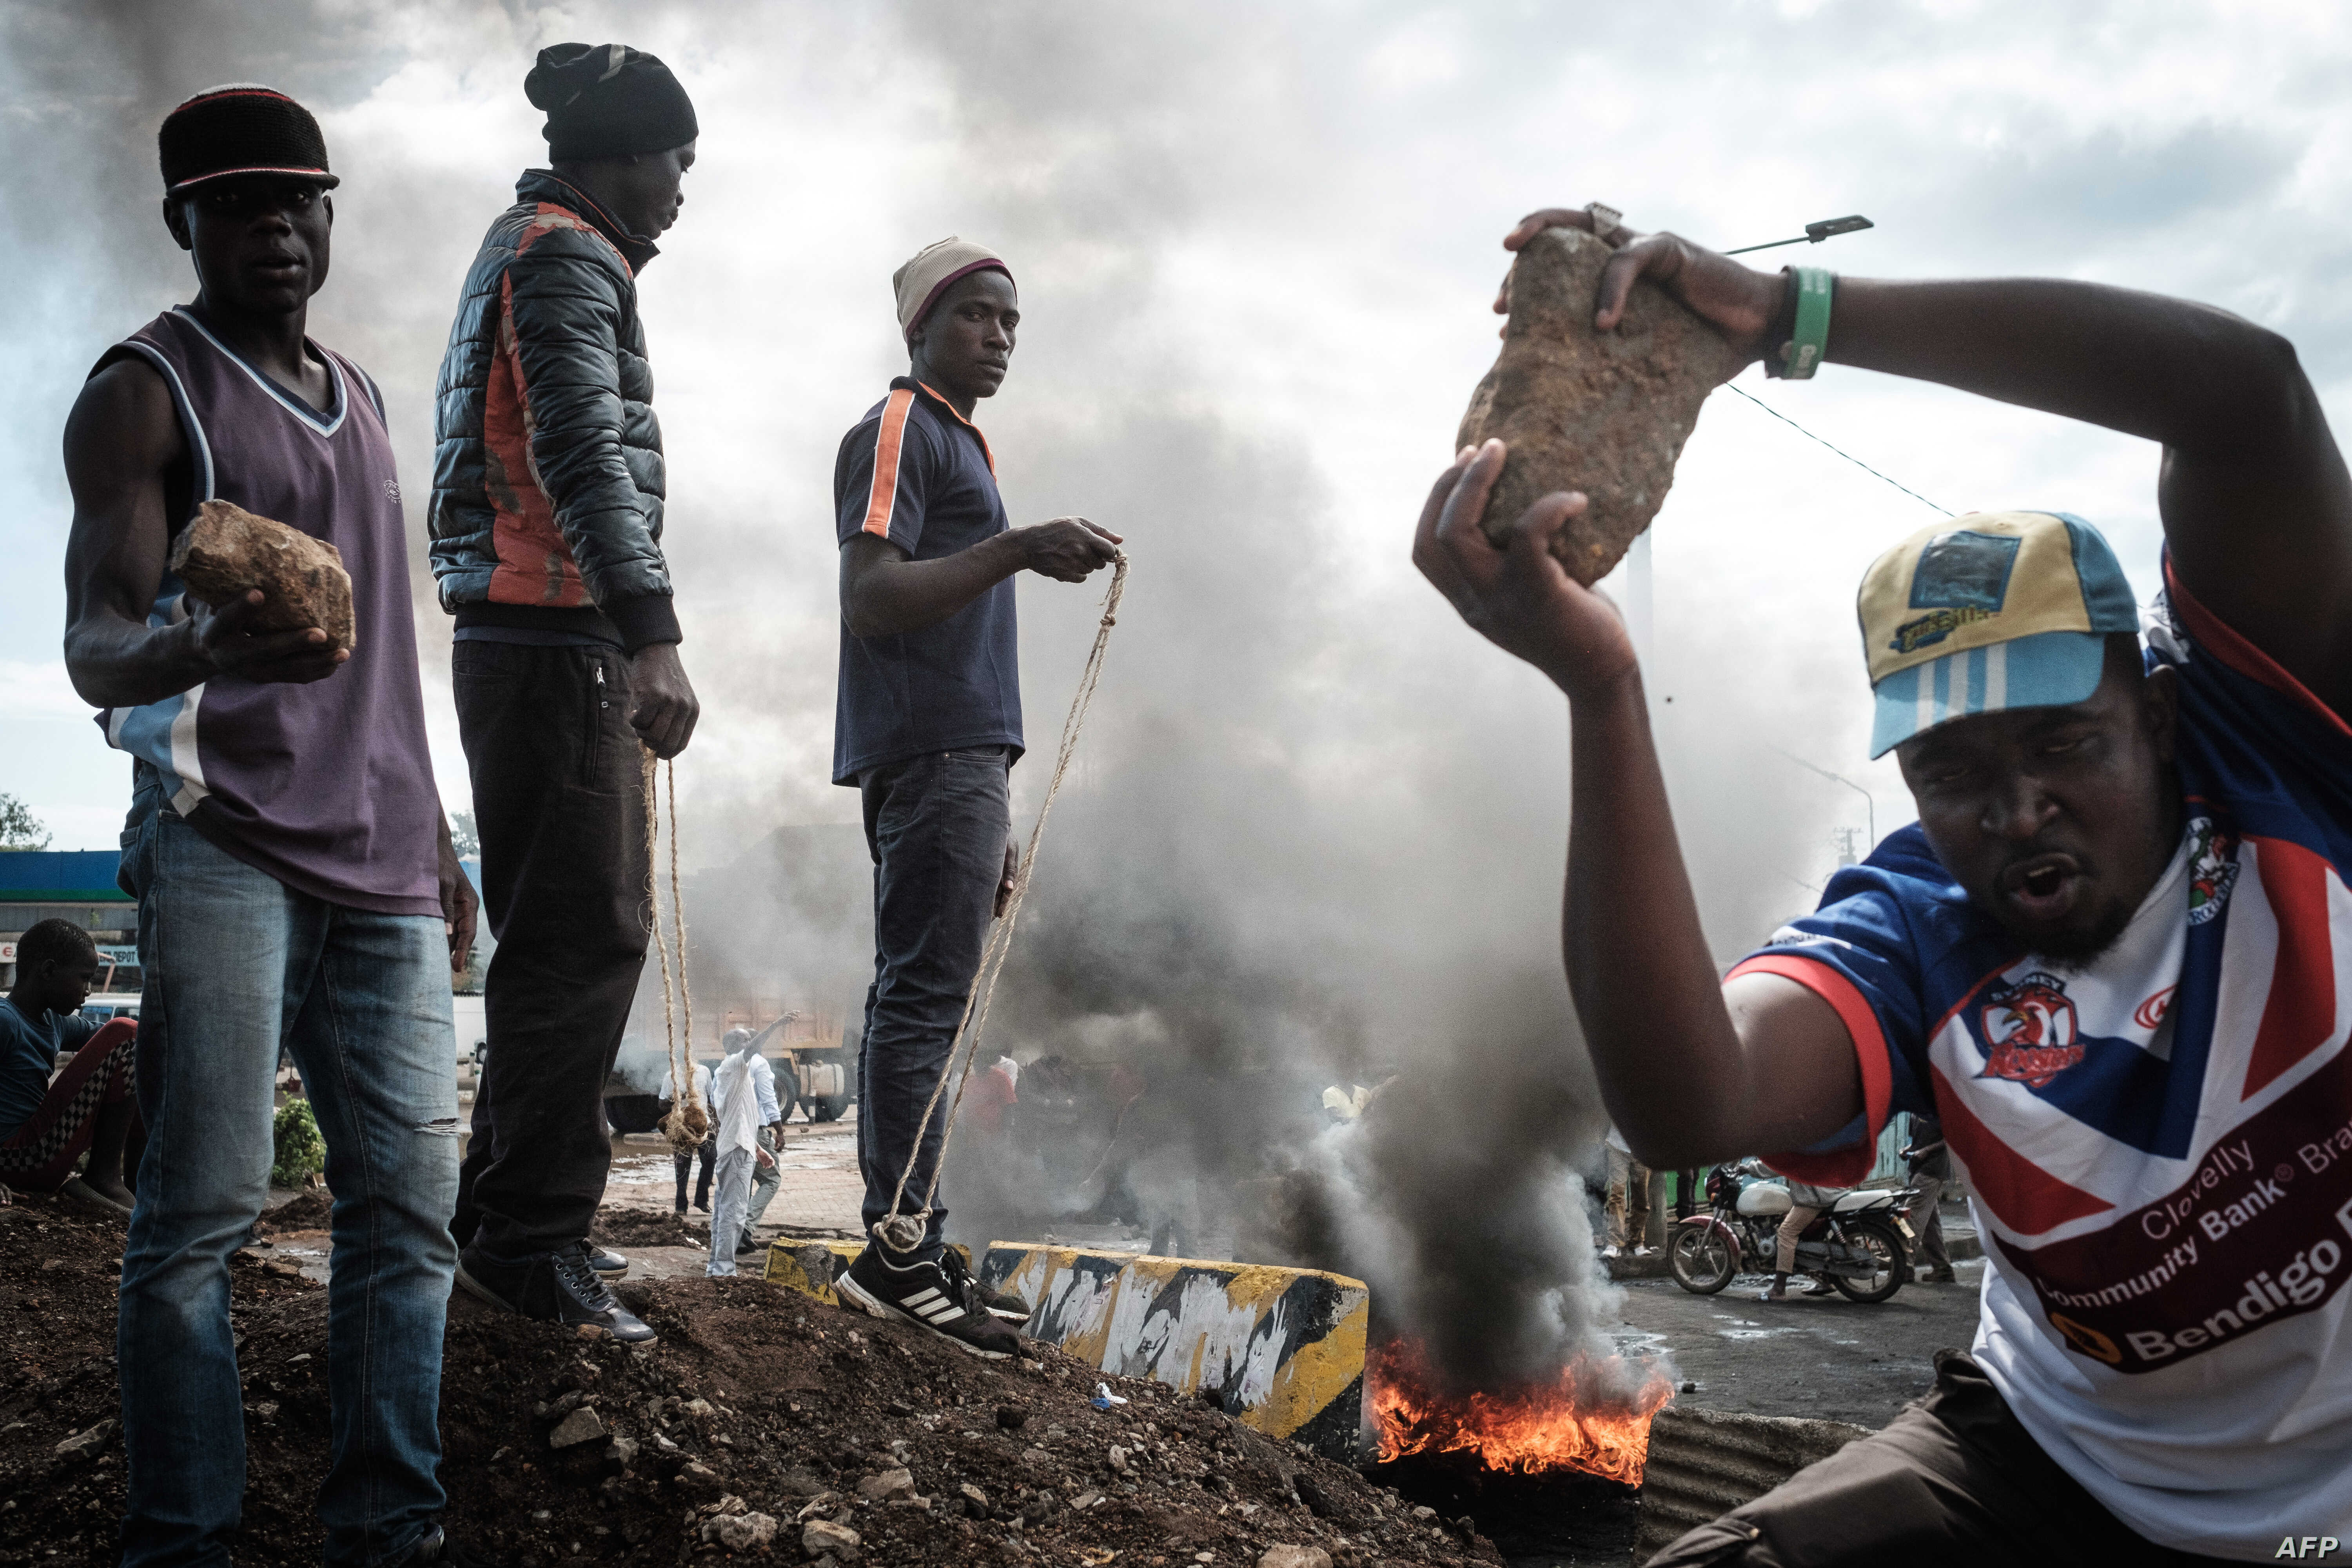 Opposition supporters hold up bricks as they block streets and burn tires during a protest in Kisumu, Kenya, on Oct. 11, 2017.